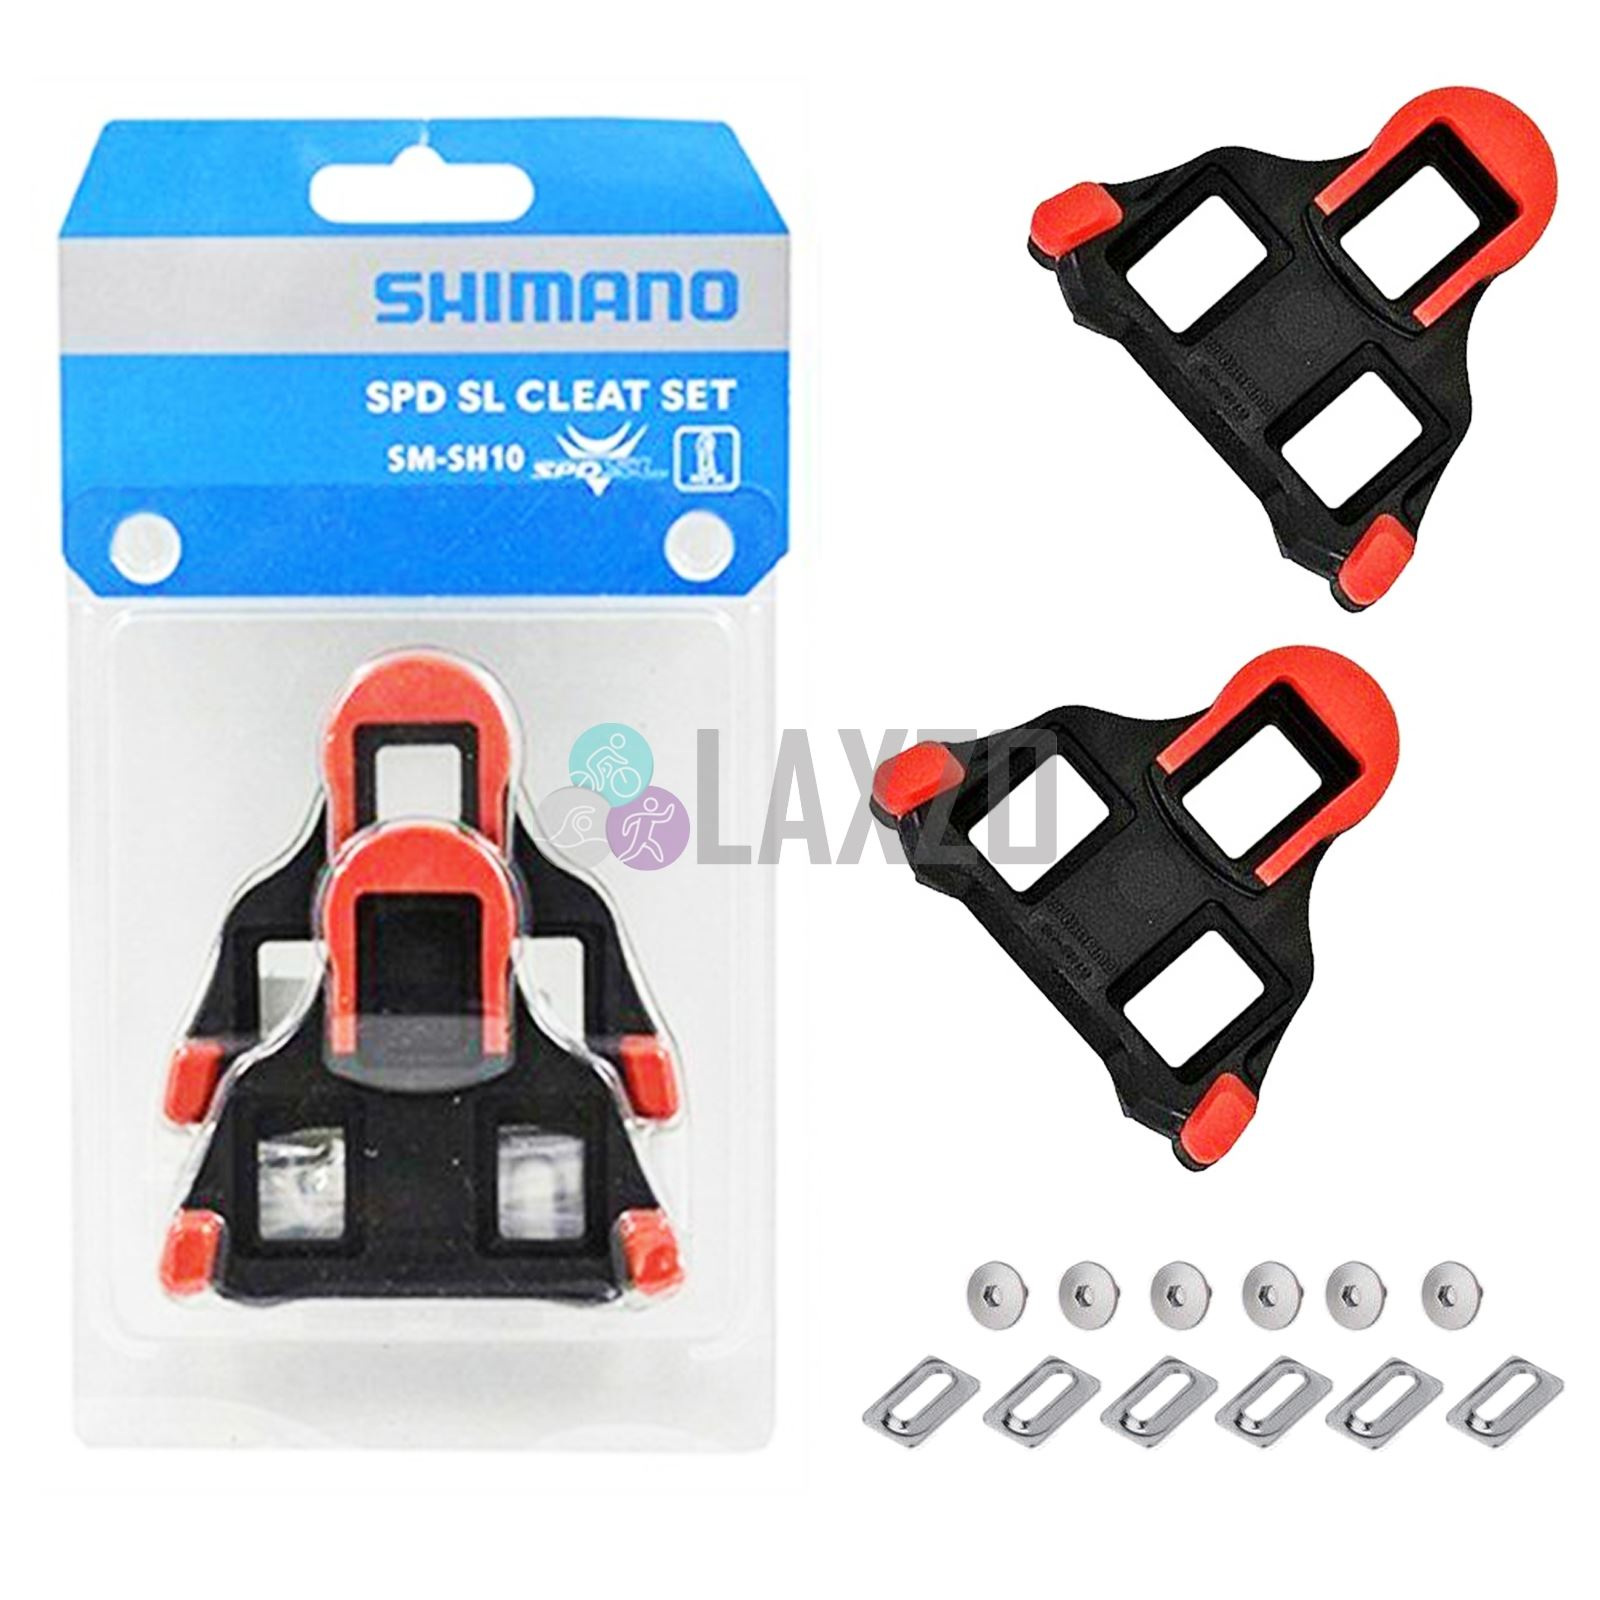 1dacc5ff2 Details about Shimano SM-SH10 SPD-SL Fixed Road Bike Red Pedal Cleats